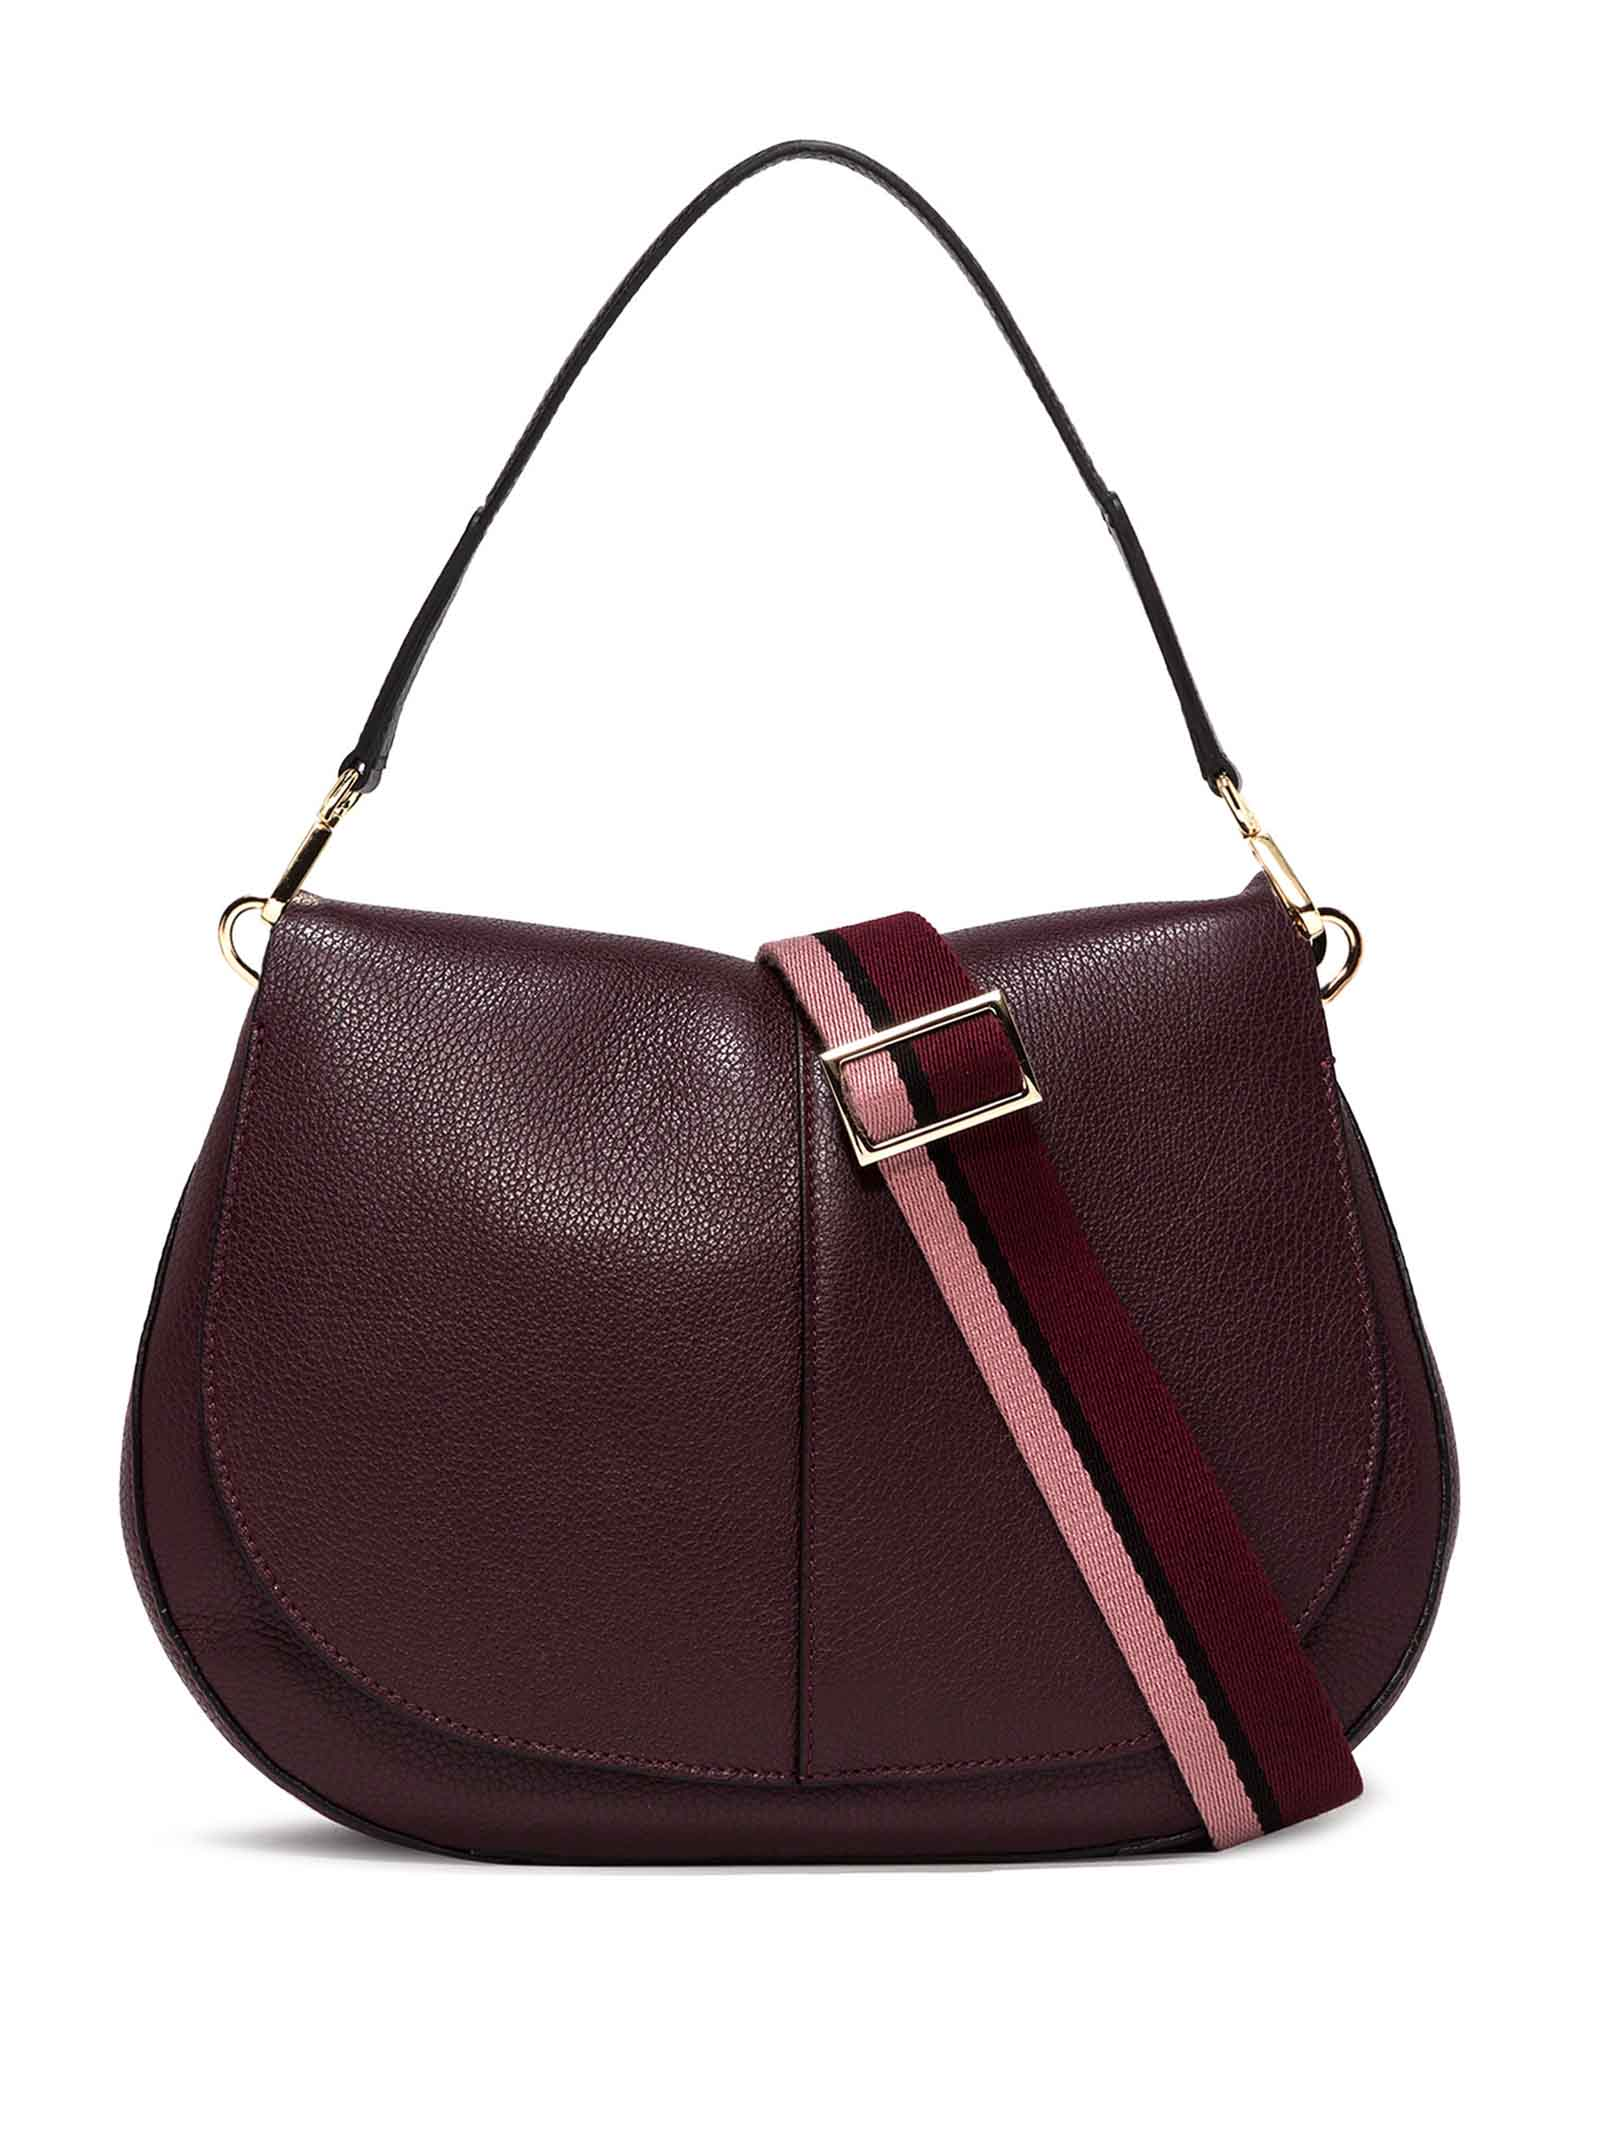 Women's Shoulder Bag Maxi Helena Round in Bordeaux Hammered Leather with Flap and Double Adjustable and Detachable Cross-body Strap Gianni Chiarini   Bags and backpacks   BS60376649